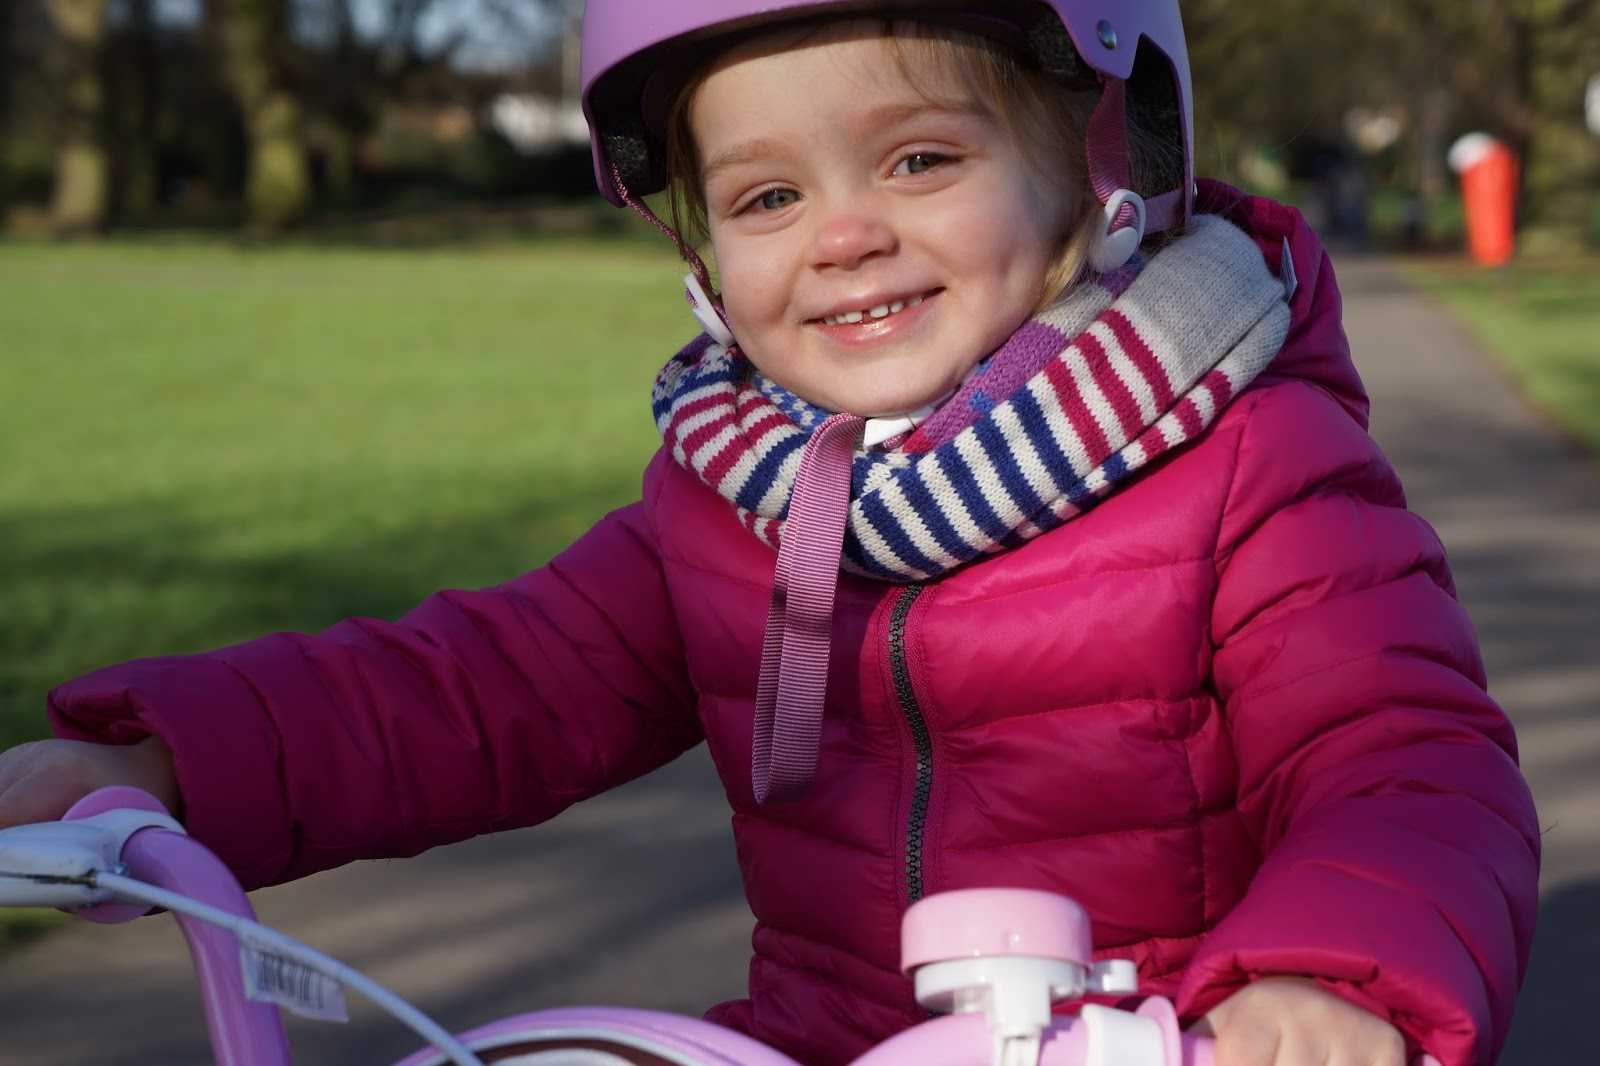 little girl with a bike helmet